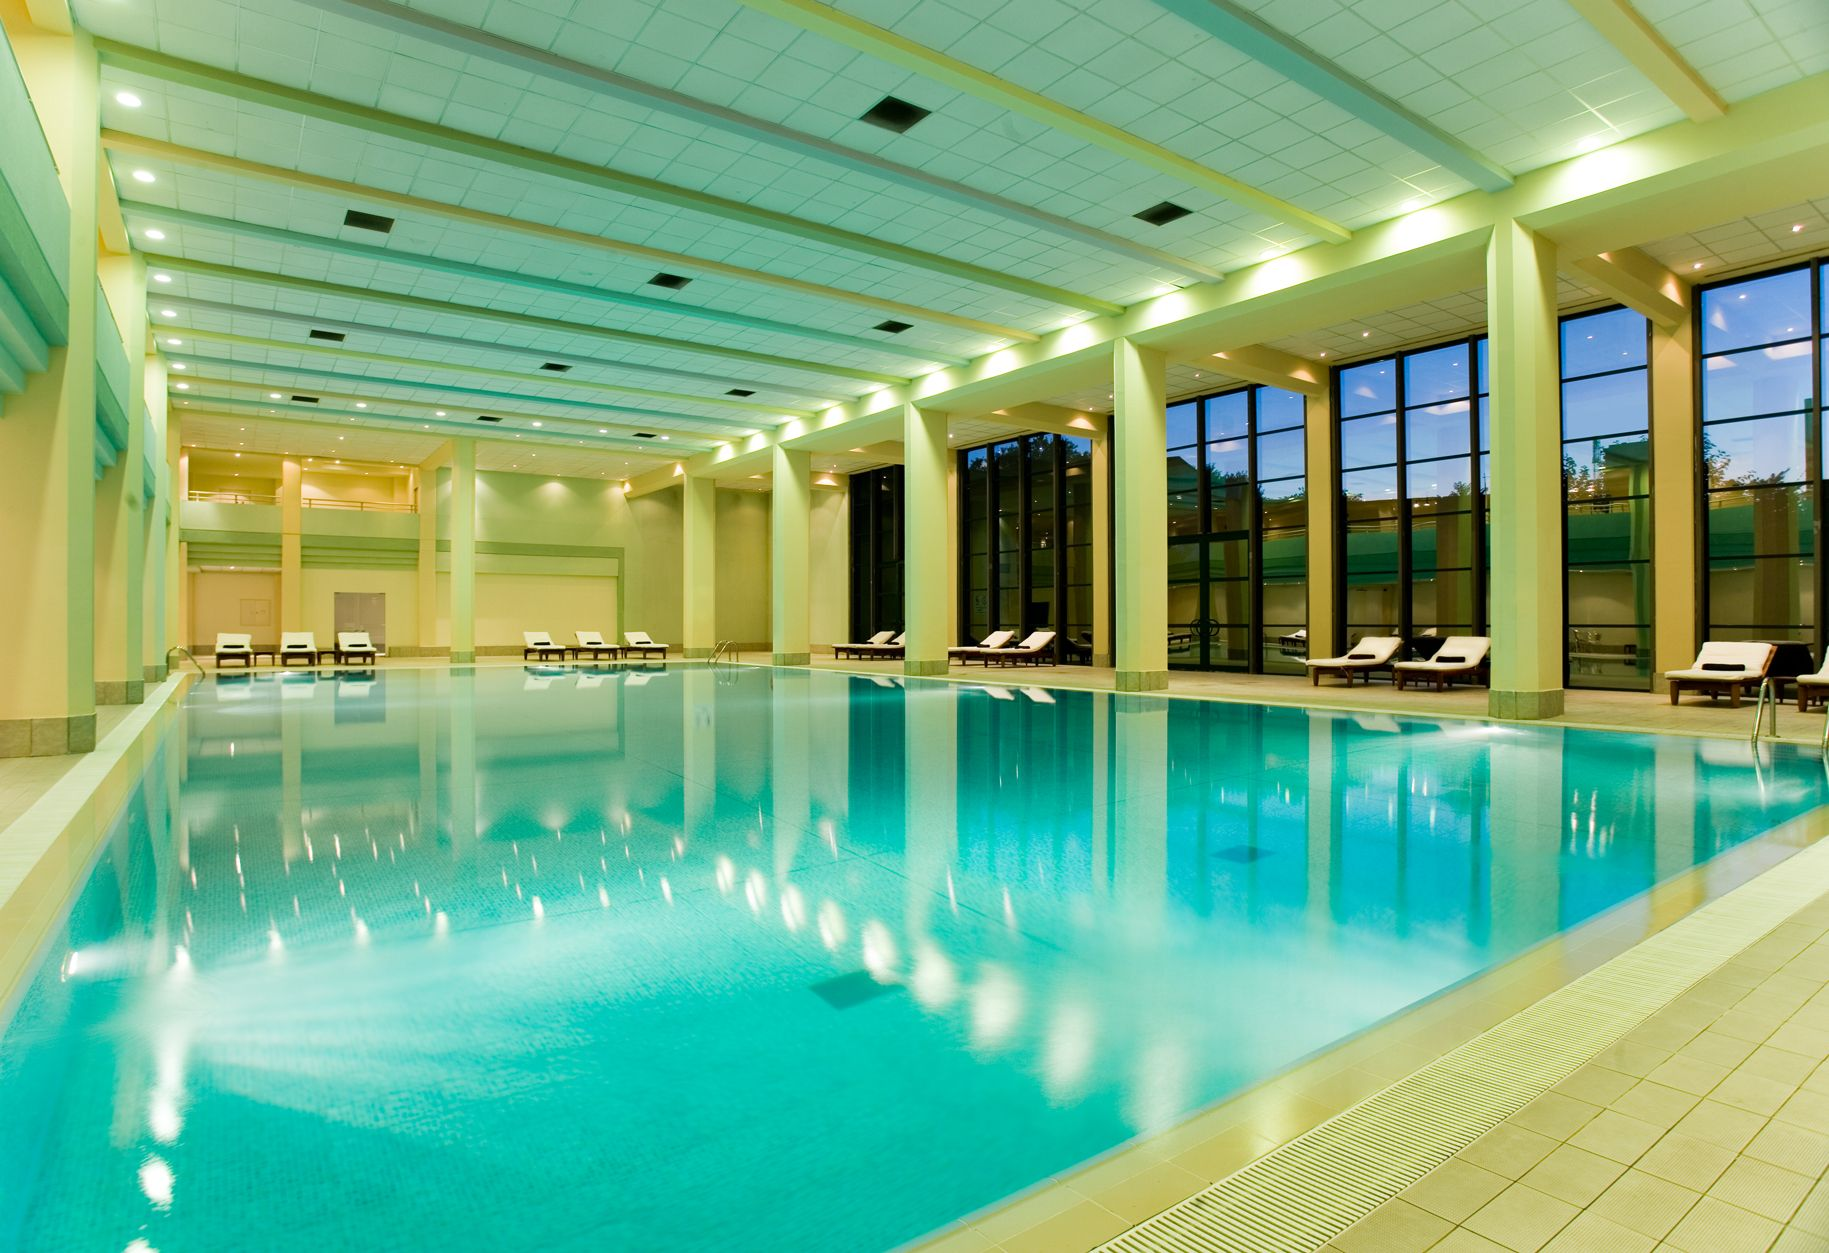 Tis The Season For Beautiful Indoor Pools Like The Lovely Oasis At Park Hyatt Baku Pool Picture Hotel Hotel Pool